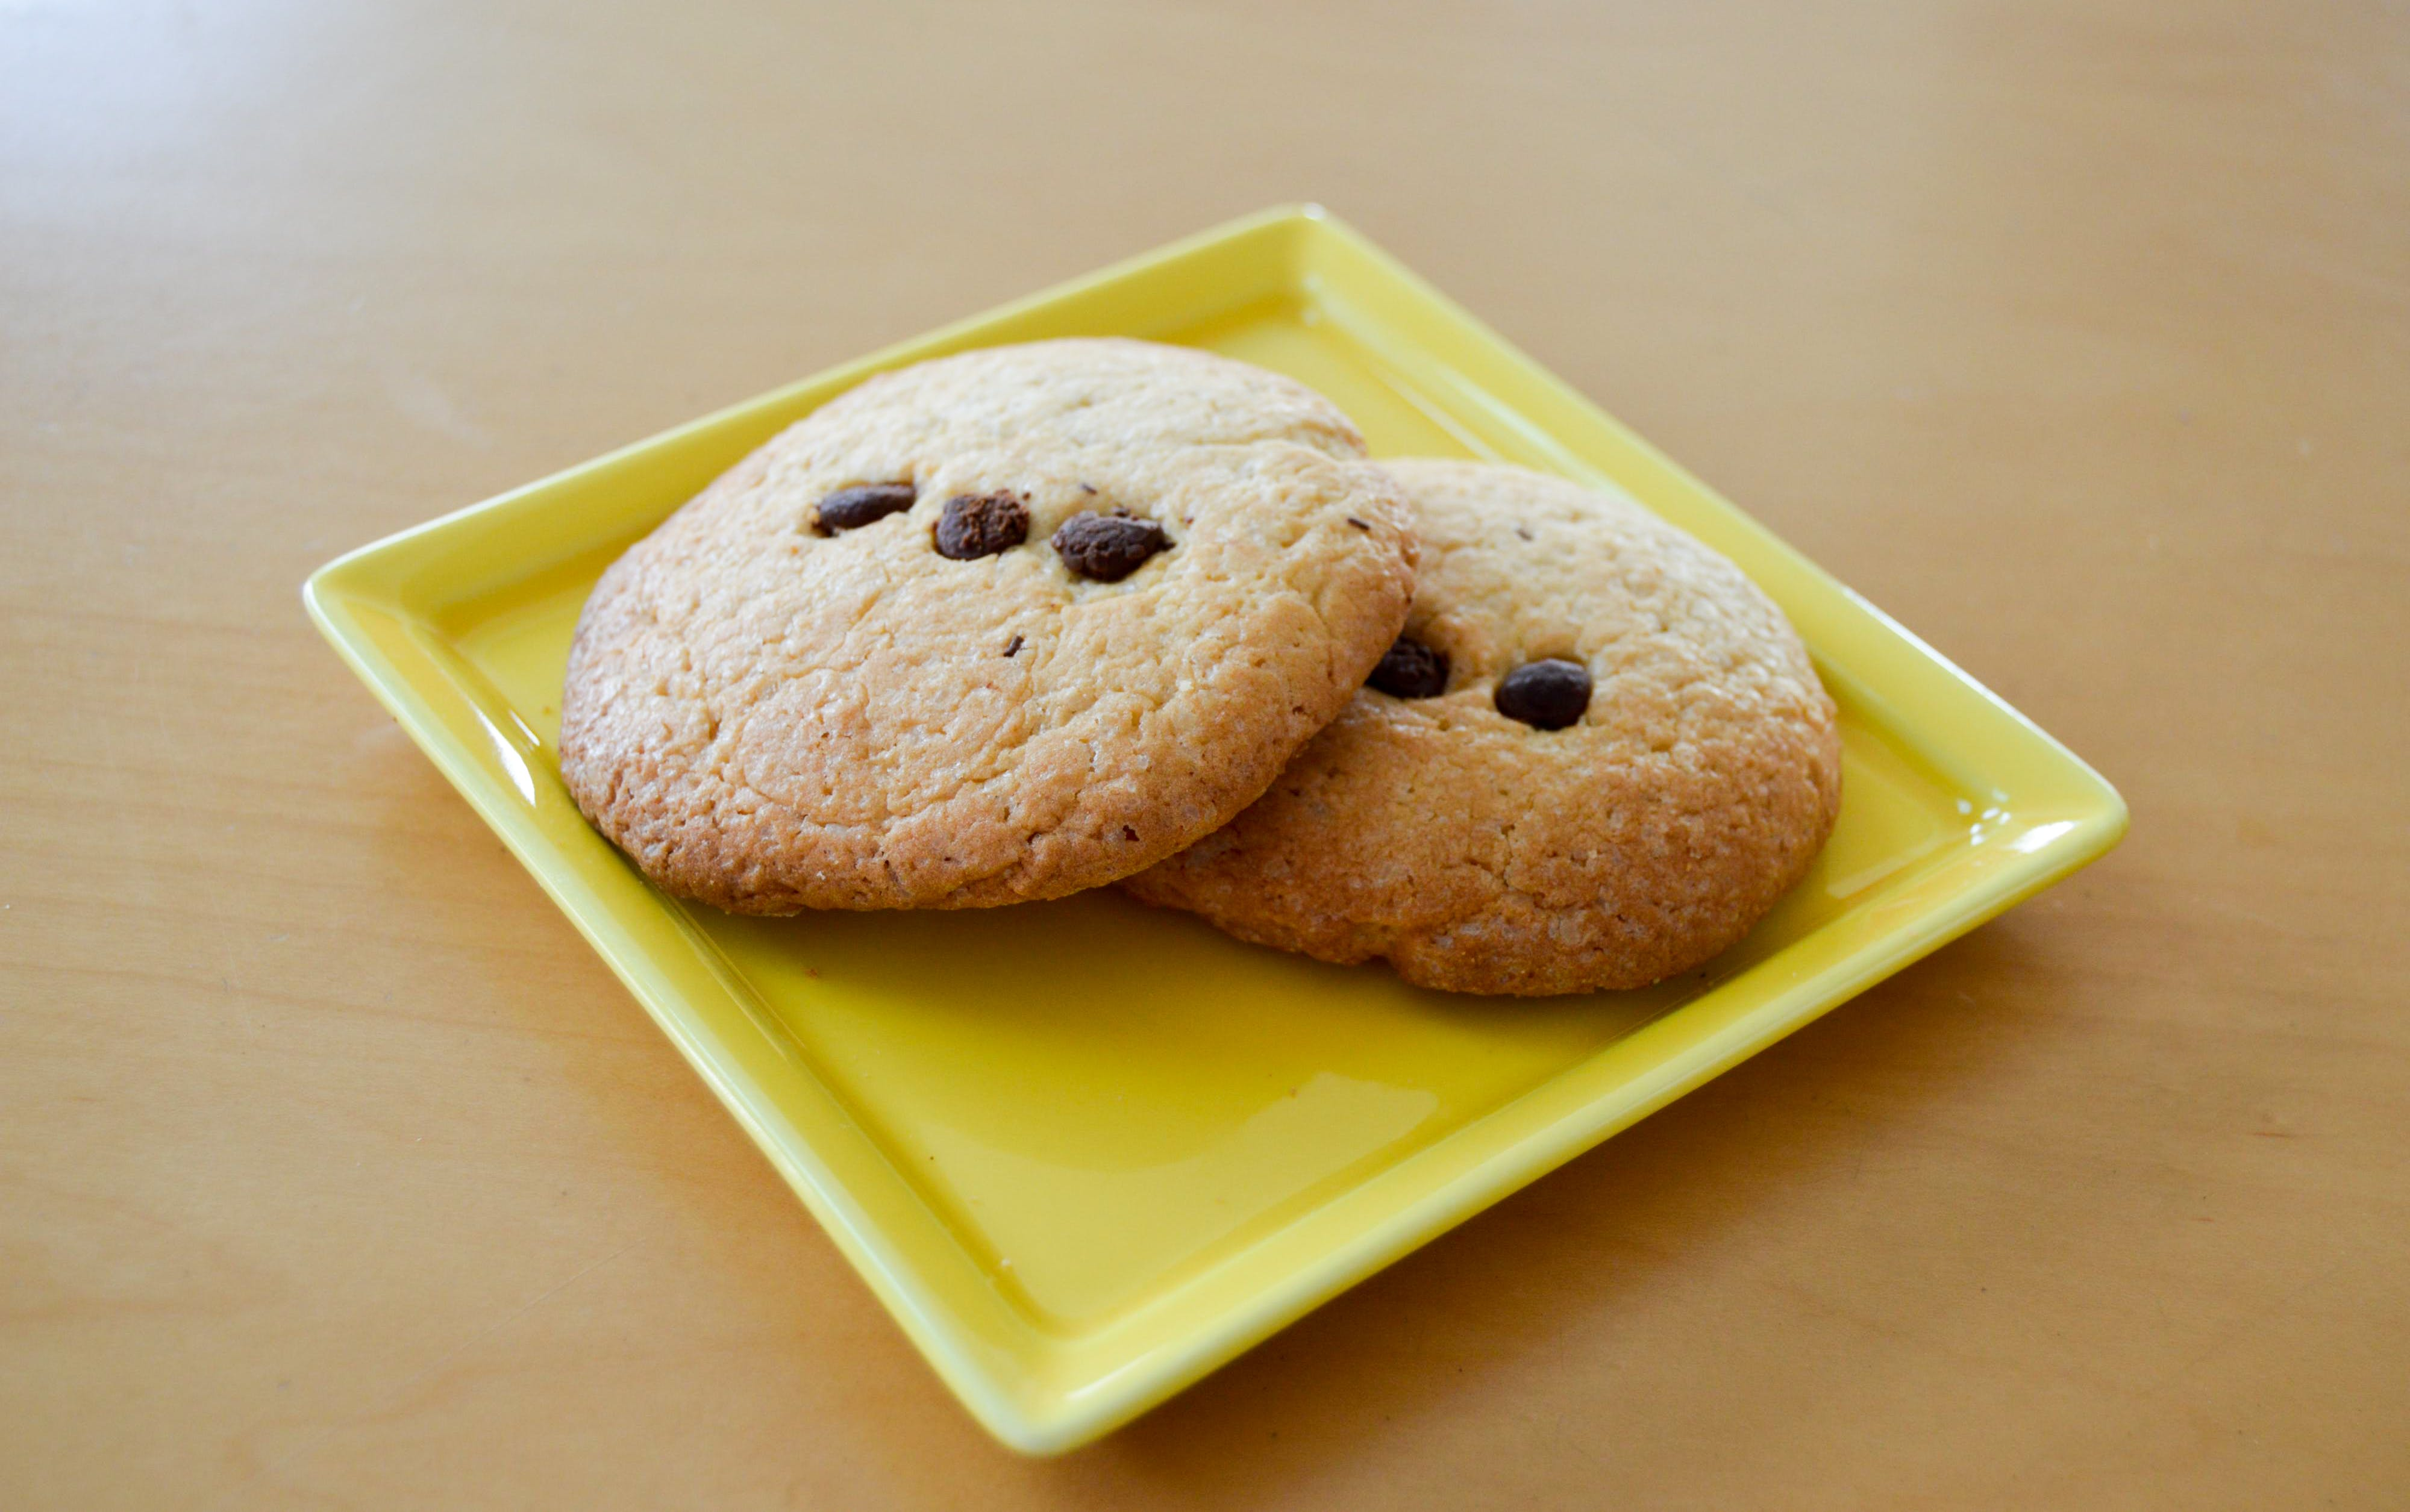 Two Chocolate Chip Cookies